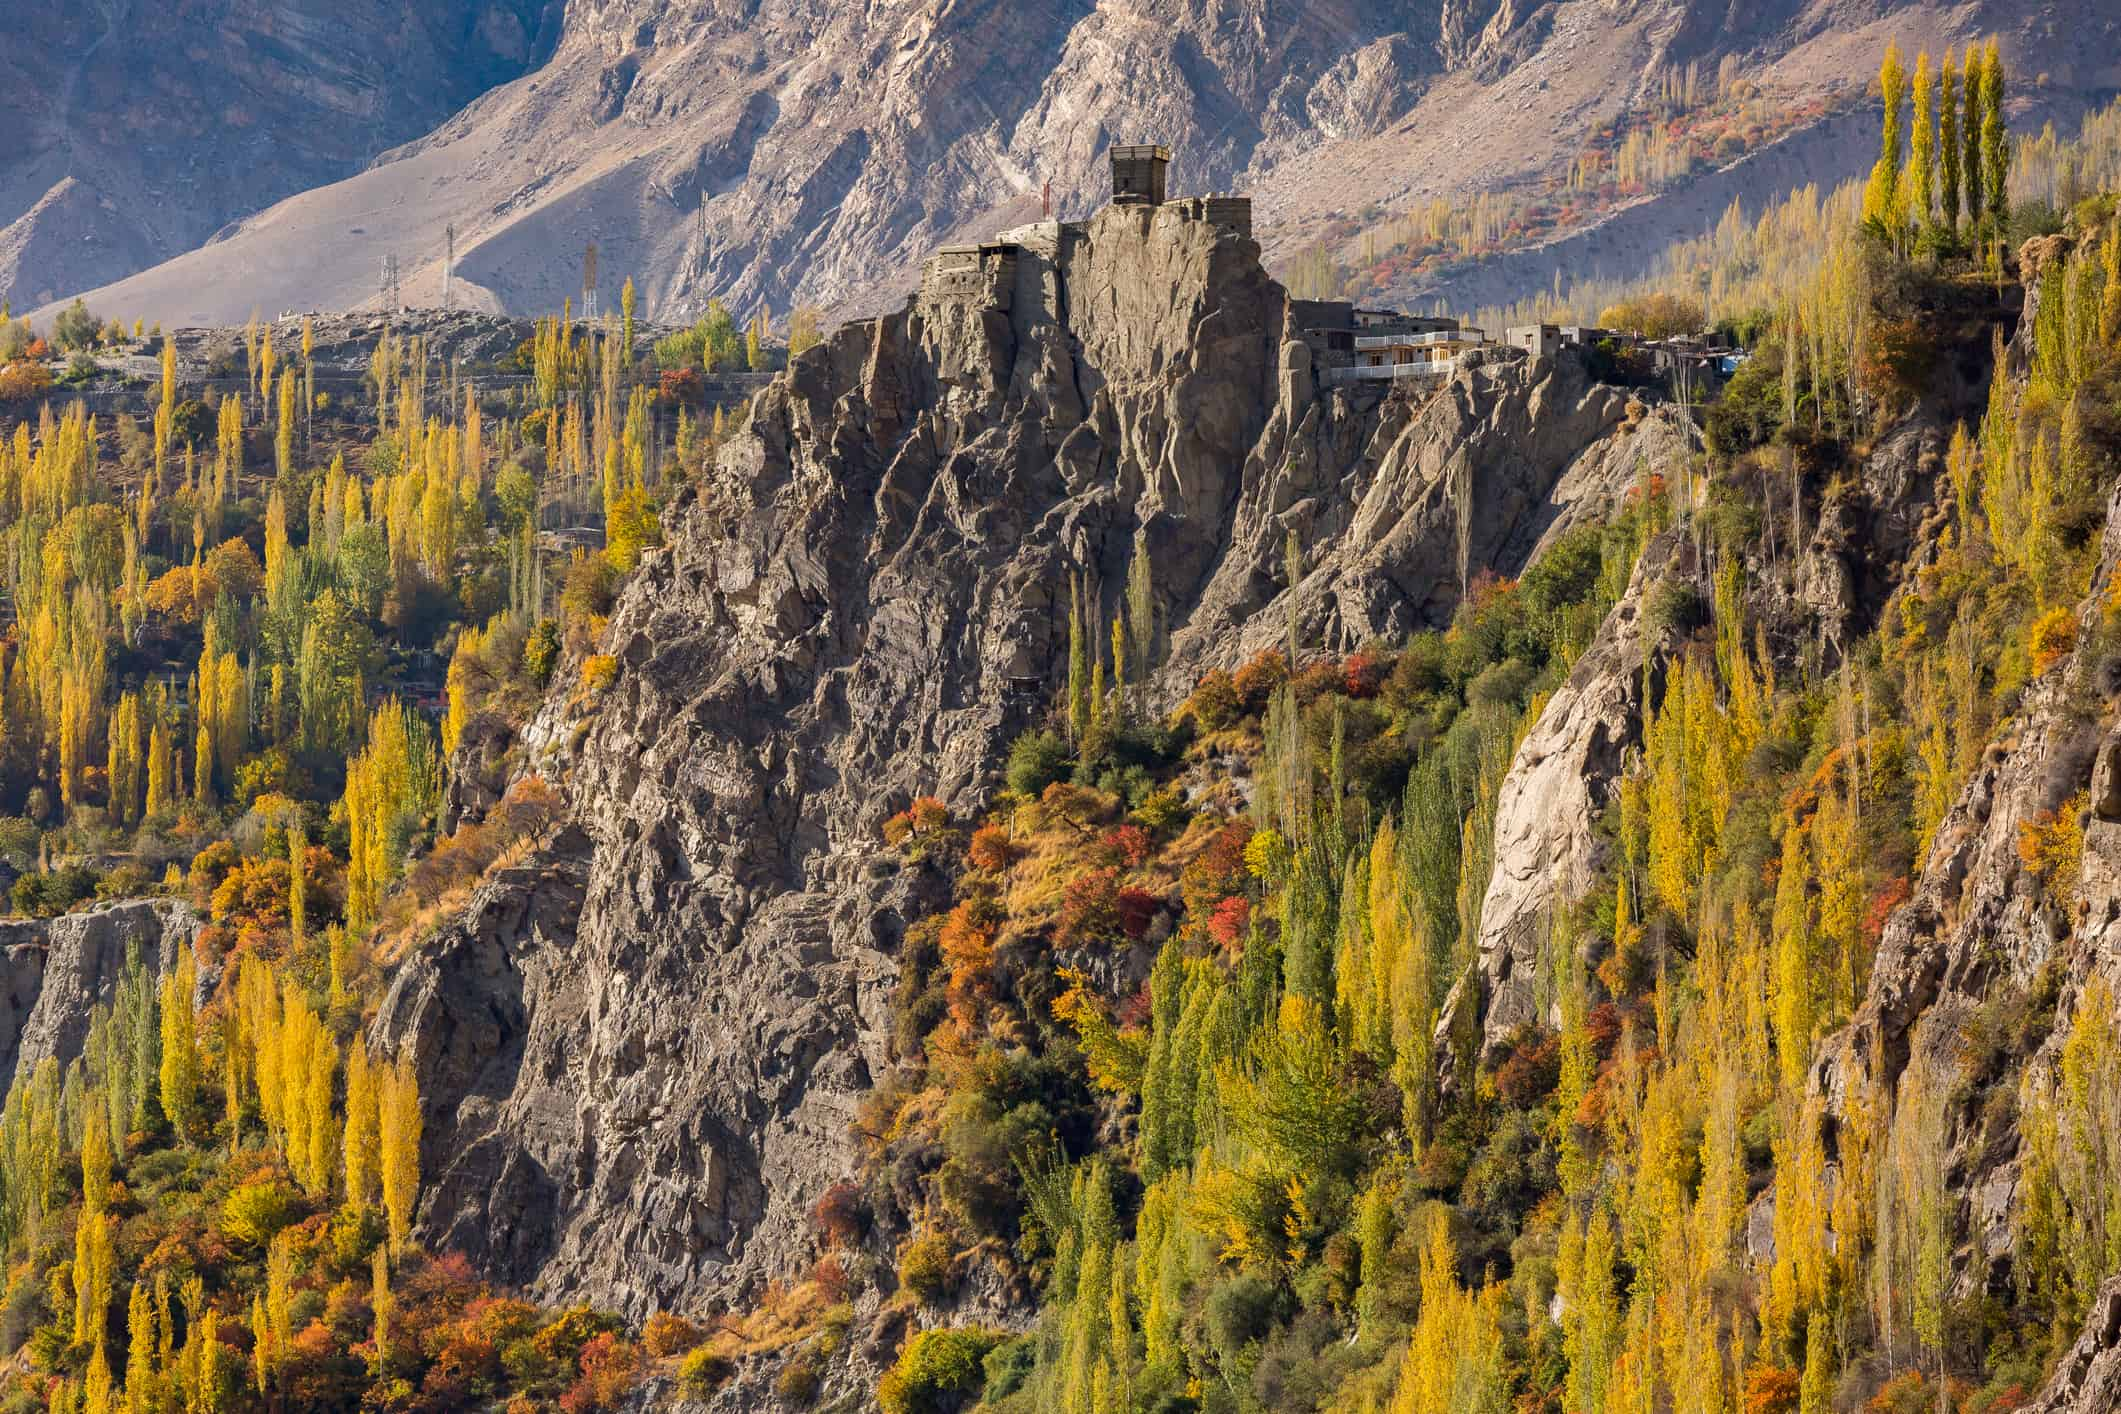 Altit Fort Hunza Valley Pakistan